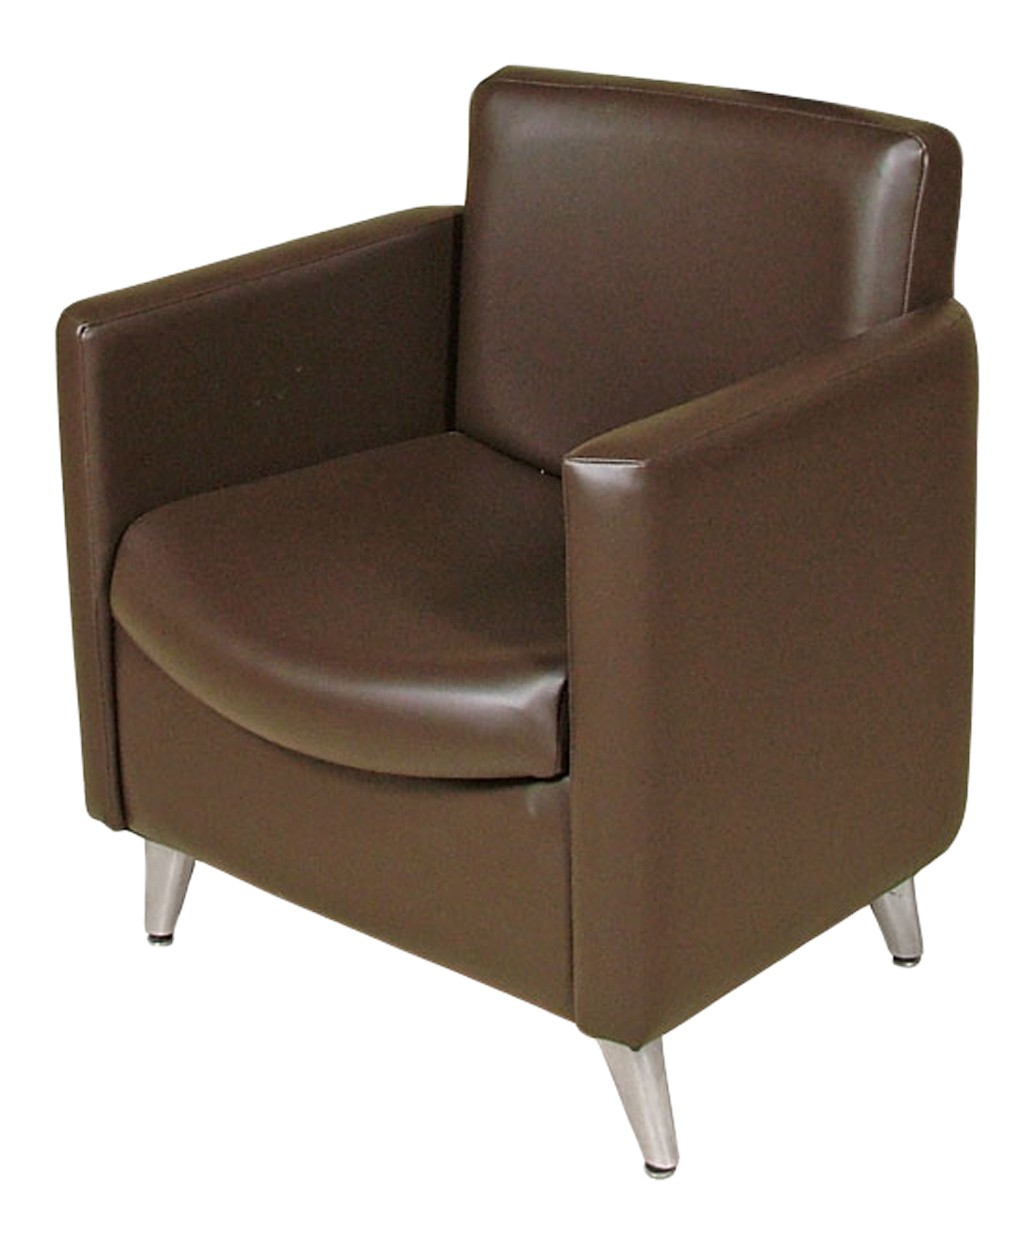 Collins 6925 Cigno Reception Chair